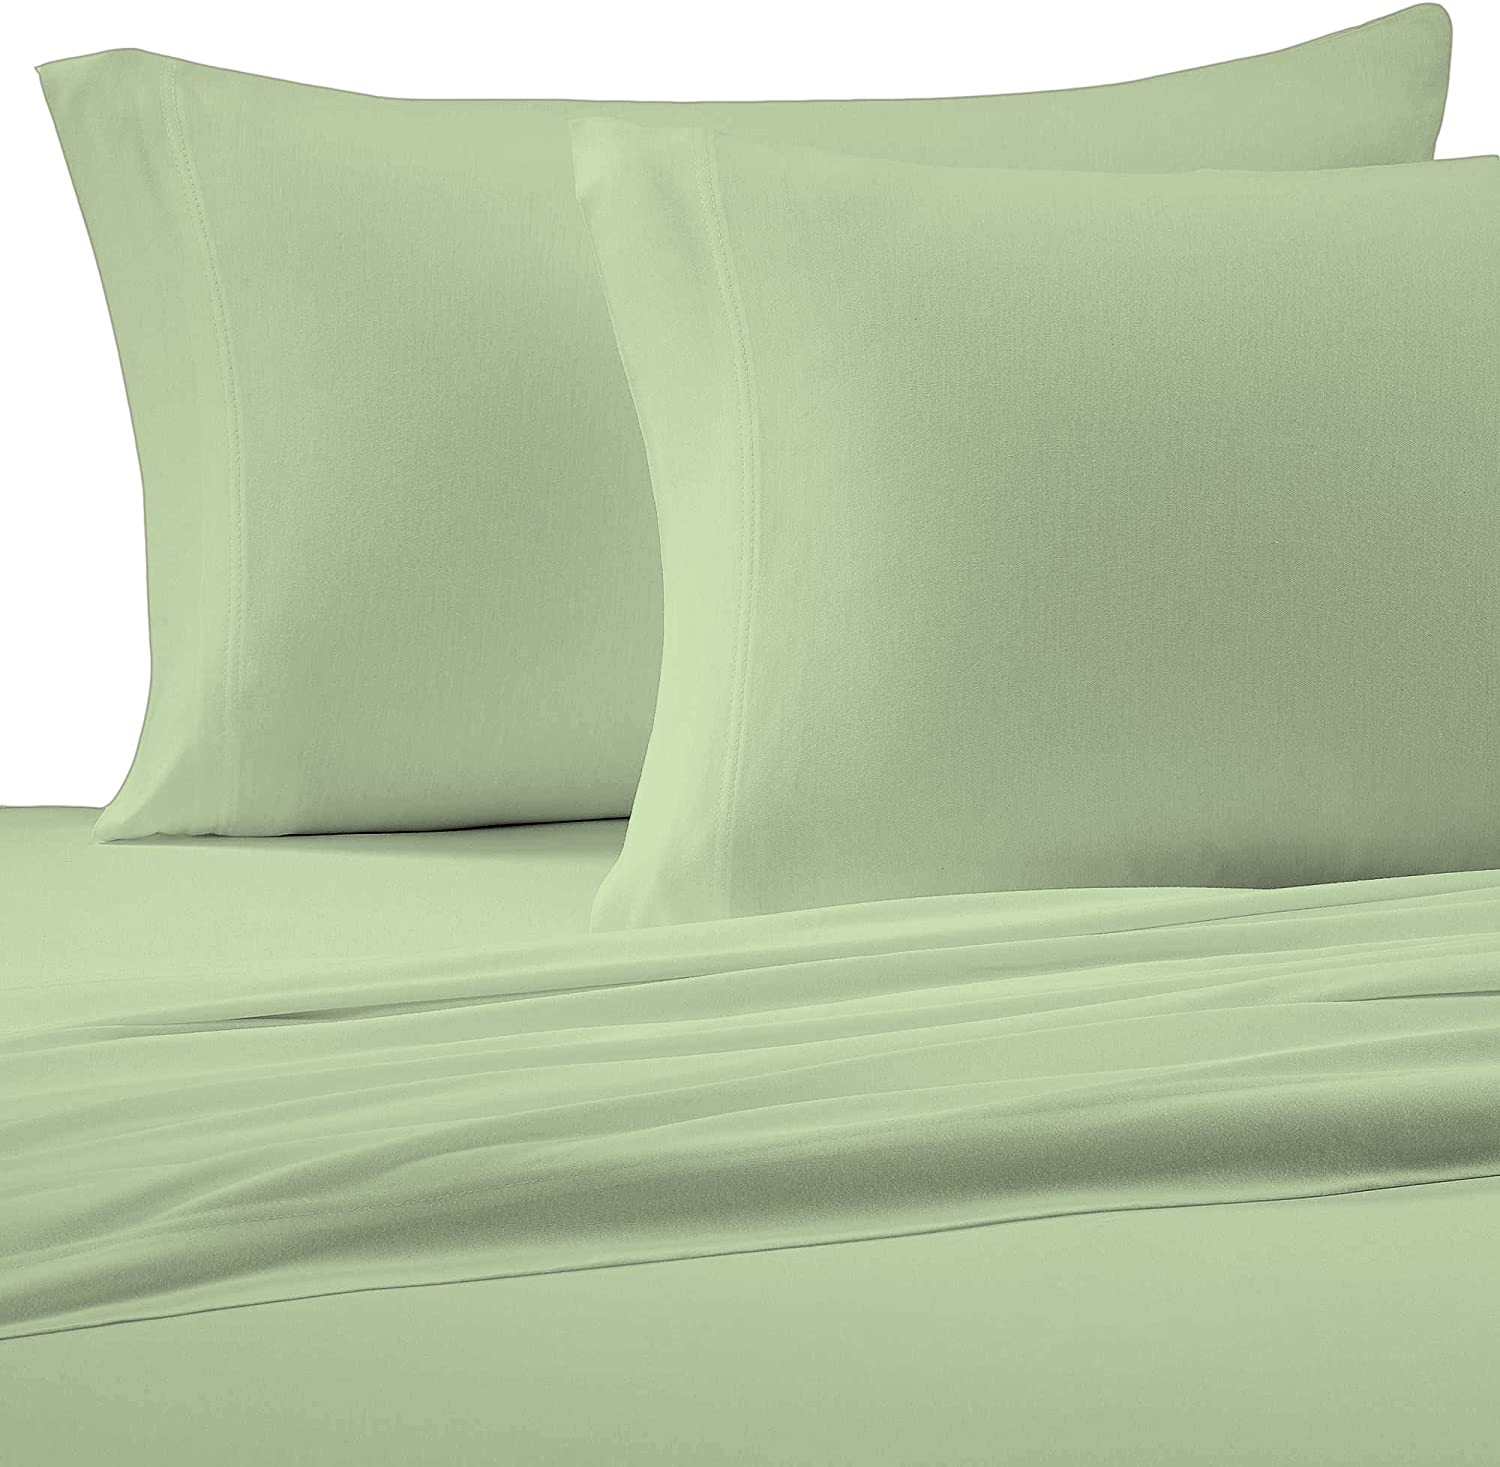 Brielle Cotton Jersey Knit (T-Shirt) Sheet Set, Full, Sage